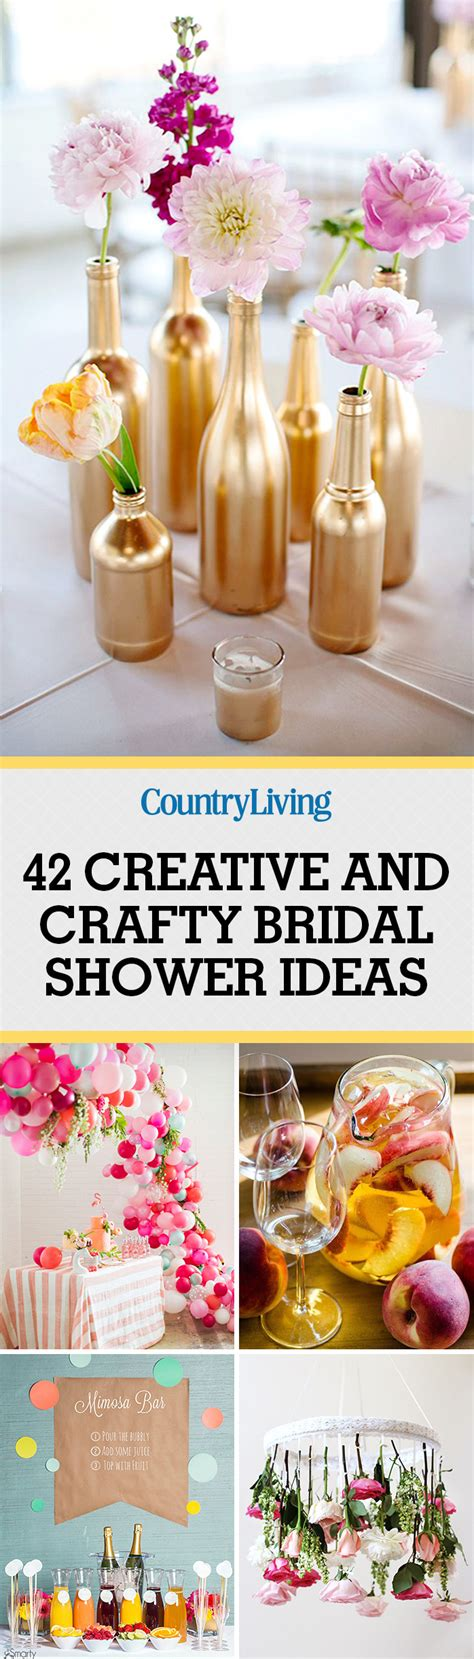 bridal shower 50 best bridal shower ideas themes food and decorating ideas for wedding showers